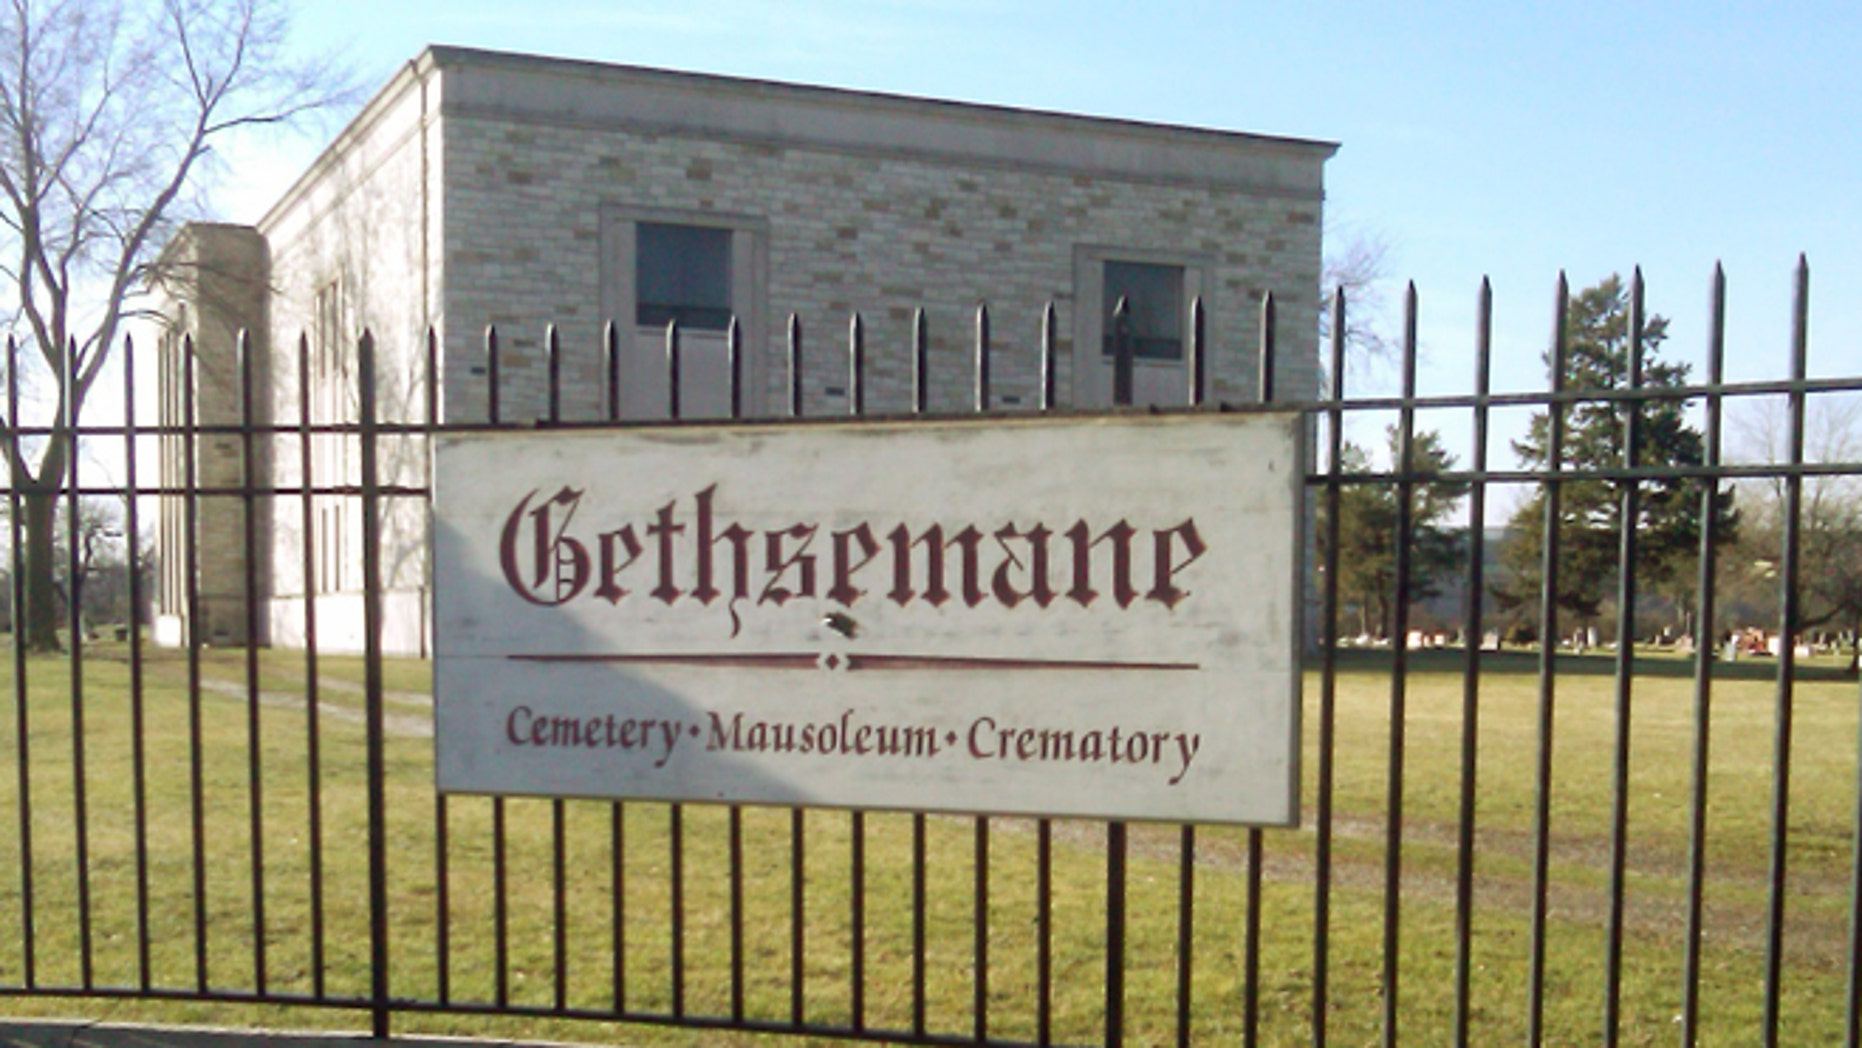 Jan. 15, 2013: Authorities say a casket containing the body of 93-year-old Clarence Bright was stolen from Gethsemane Cemetery seen in Detroit.